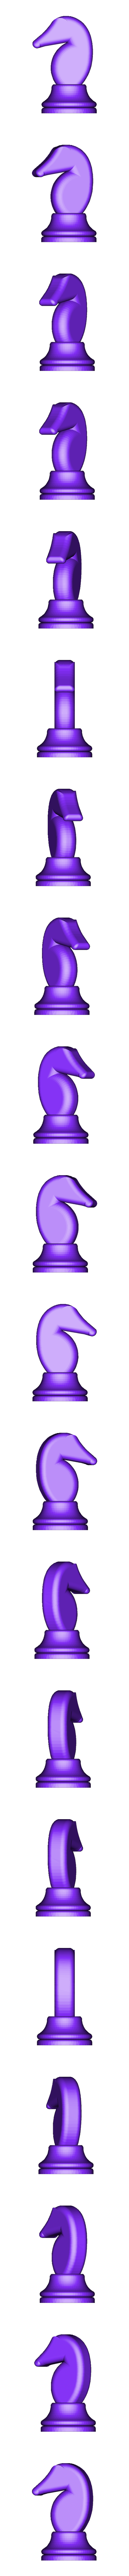 04 caballo.STL Download STL file Classical chess • 3D printing object, LuisCrown